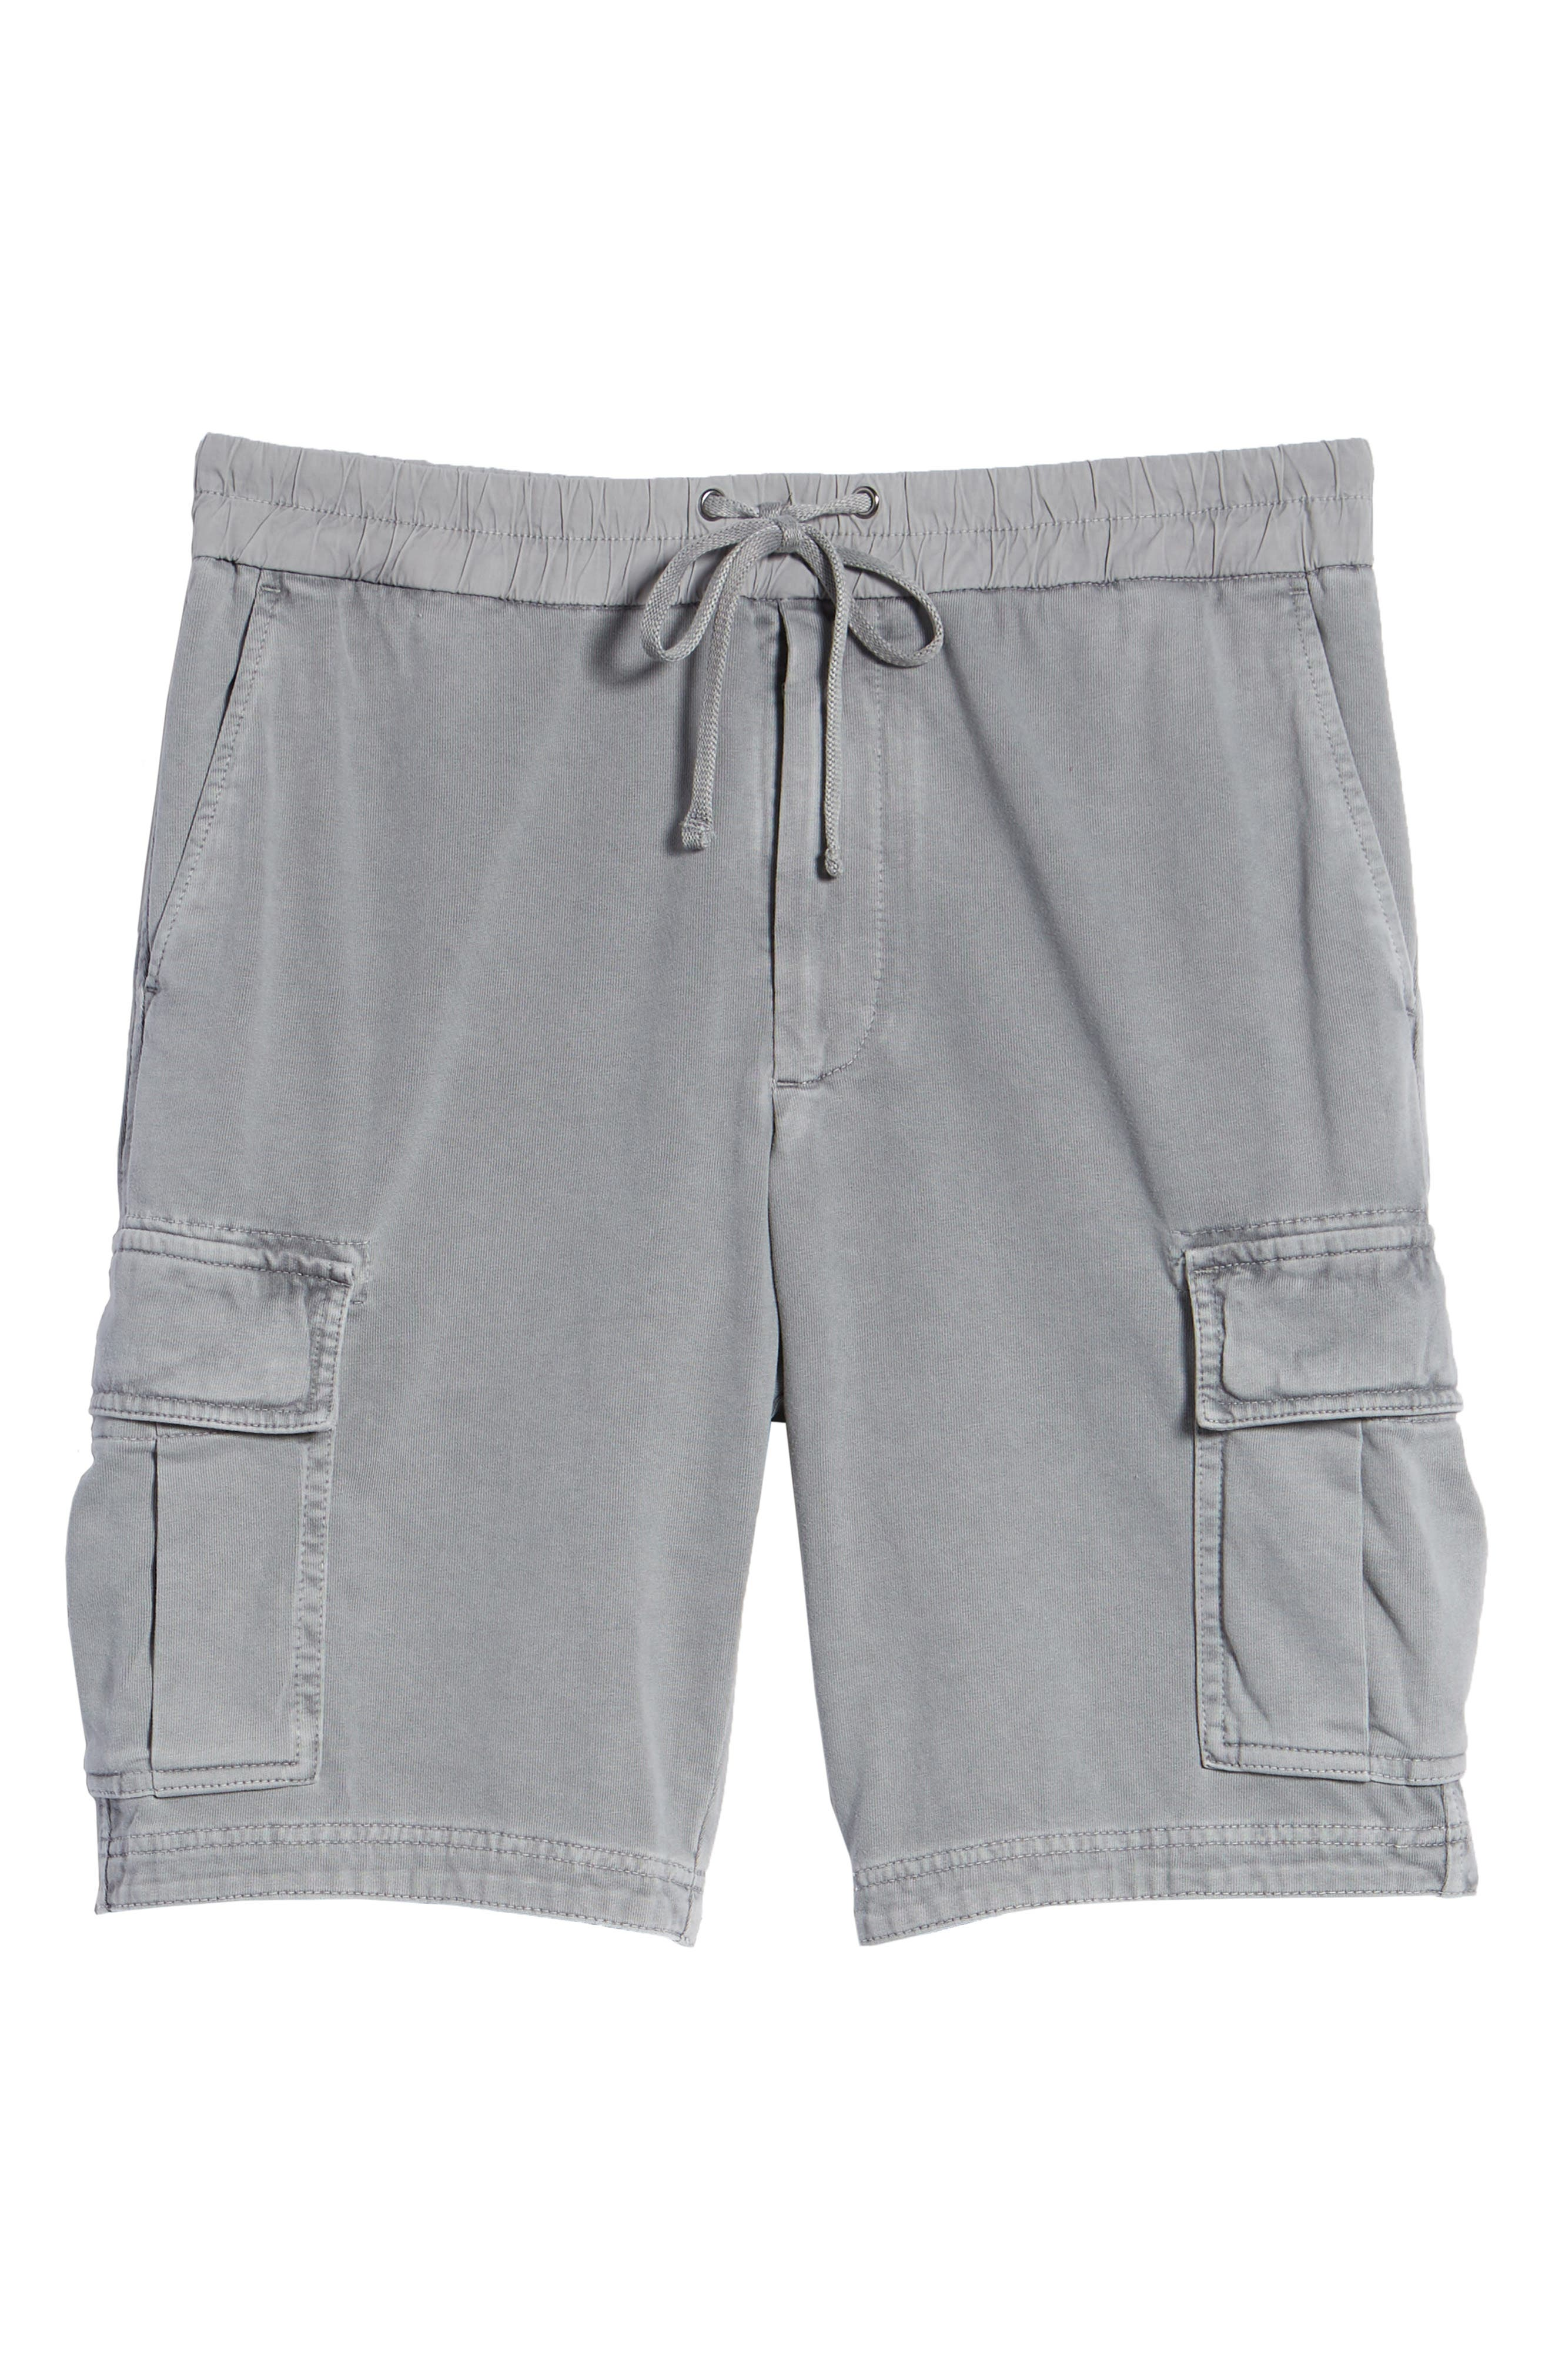 Heavy Jersey Cargo Shorts,                             Alternate thumbnail 6, color,                             BREEZE PIGMENT